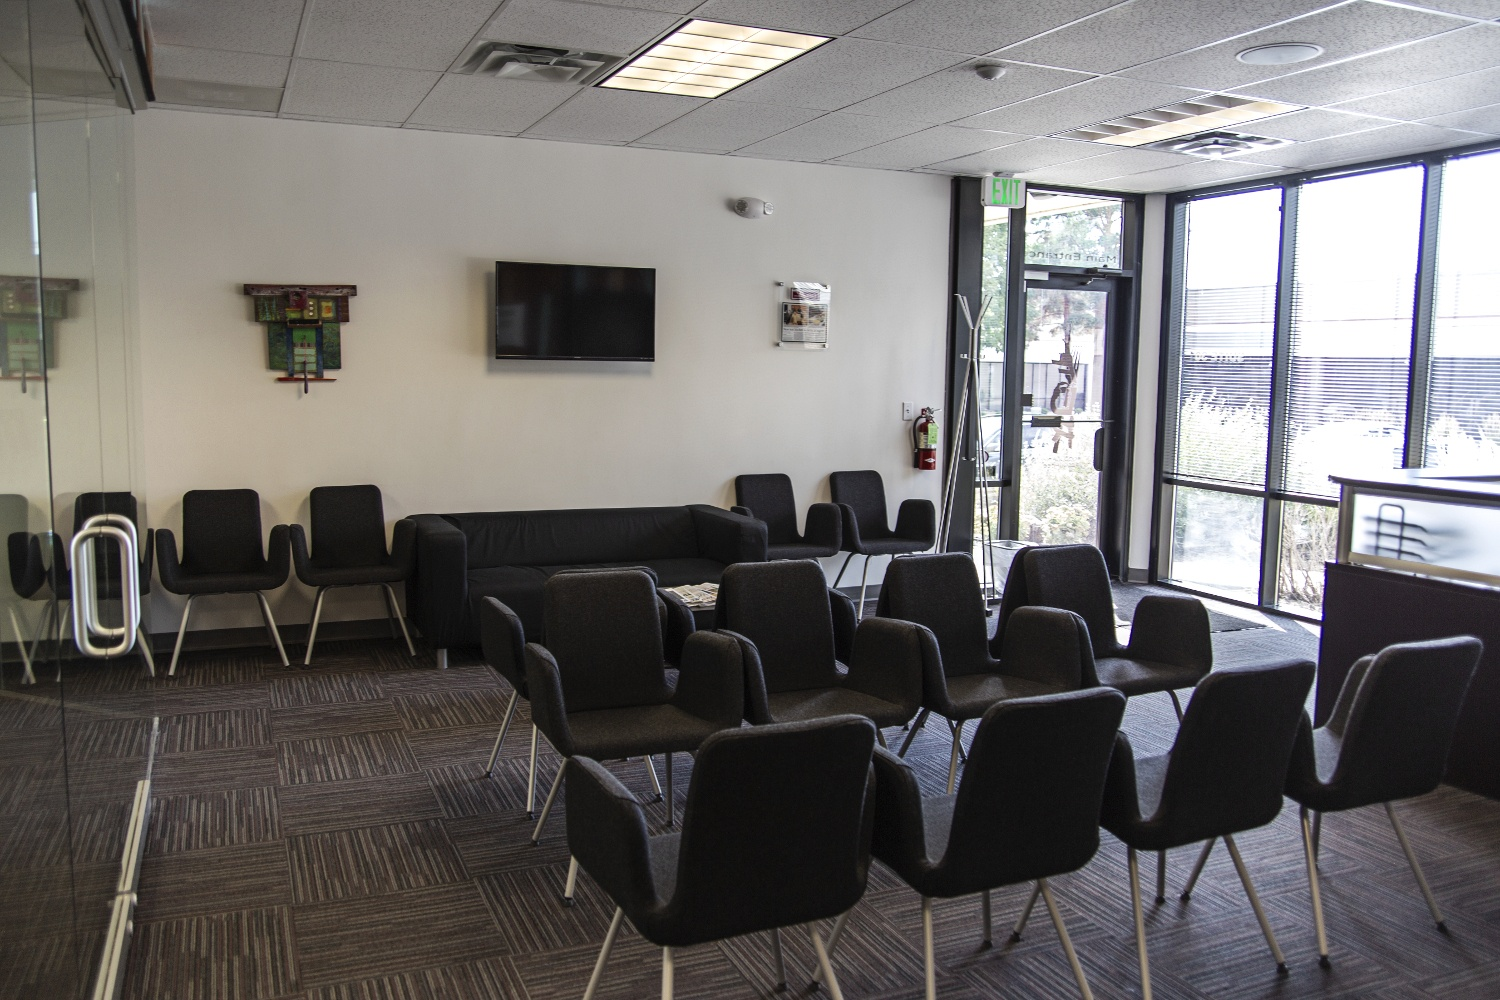 denver focus group facility